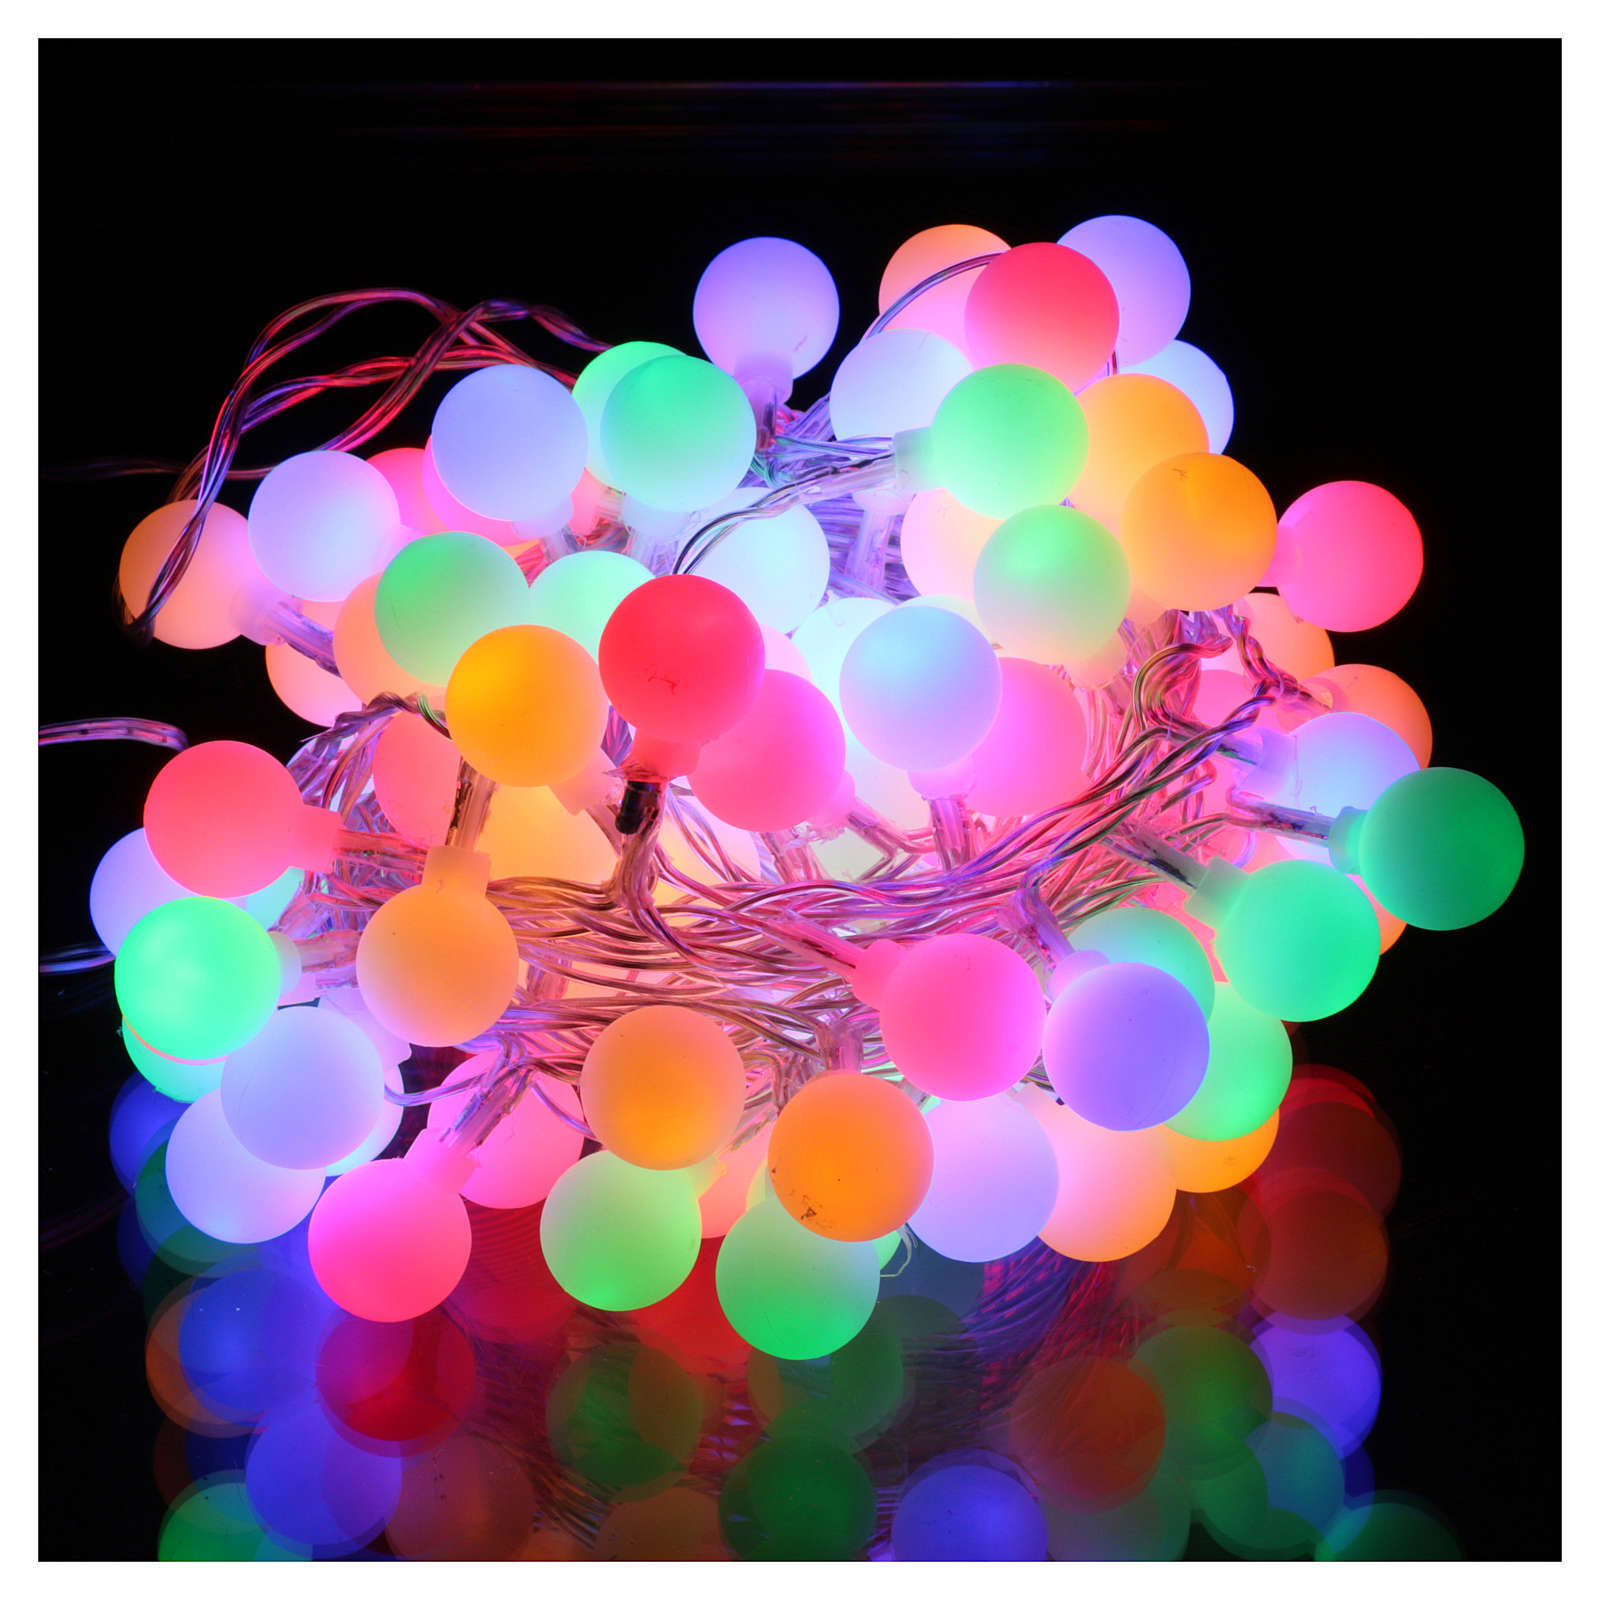 Catena luci sfere opache 100 LED Multicolor interno esterno 3